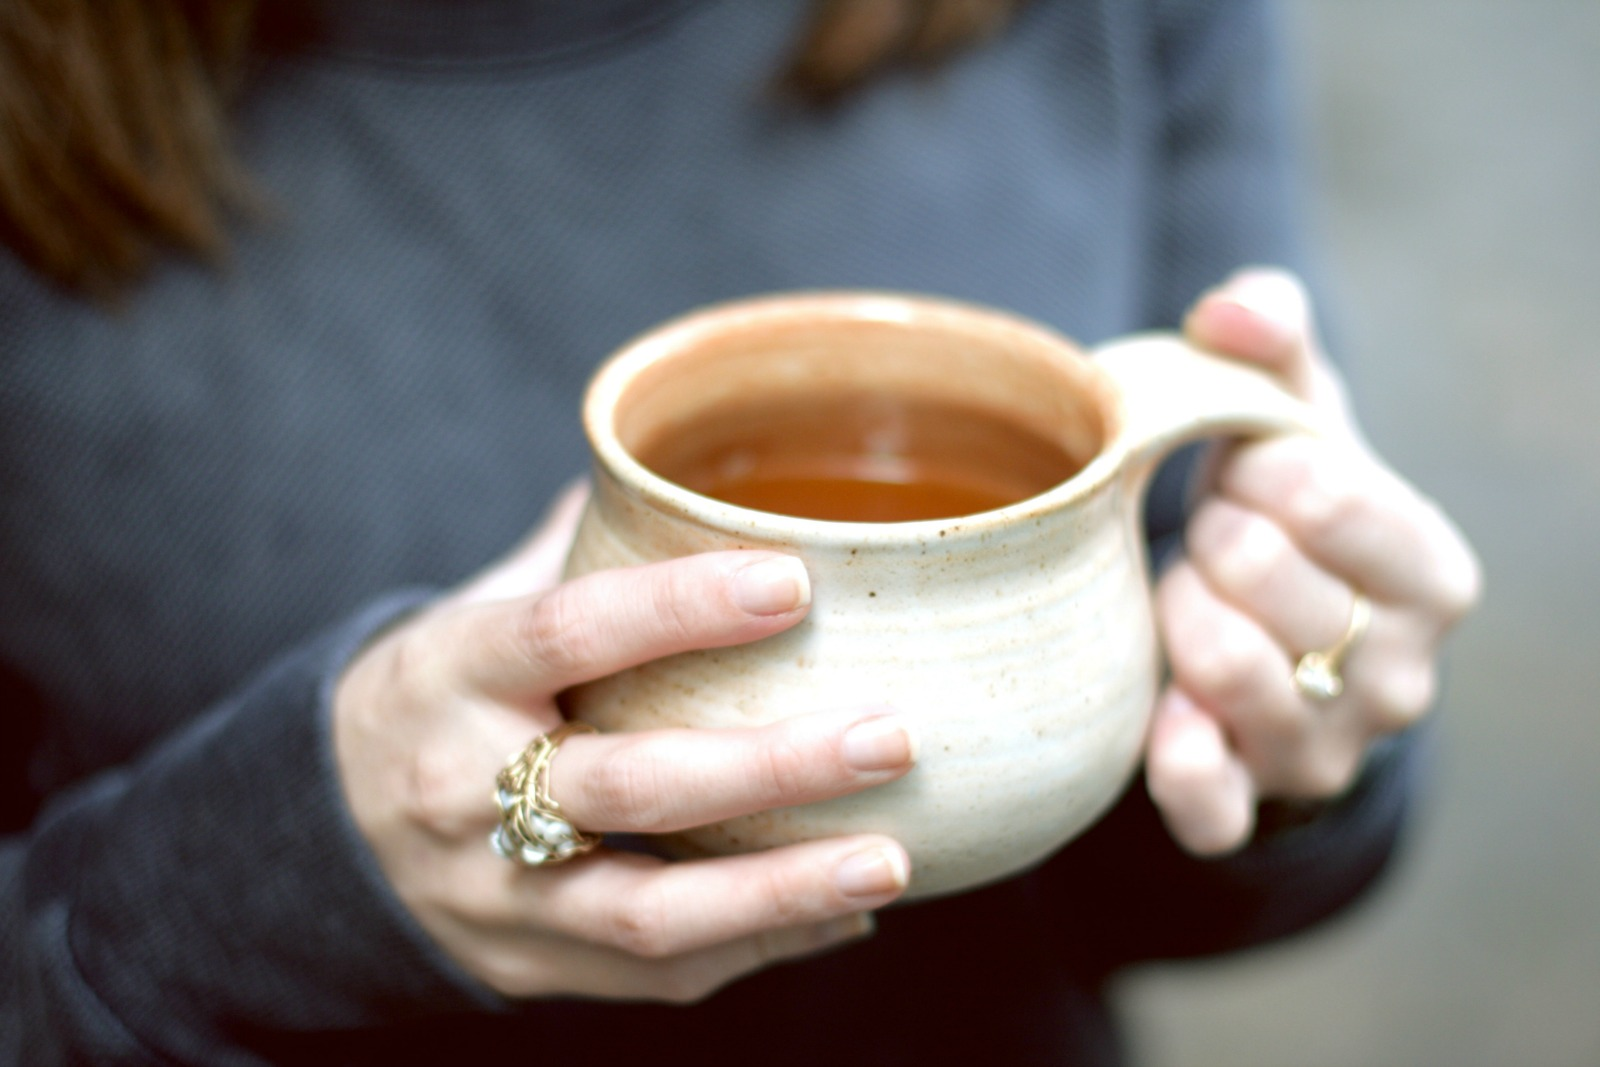 Feeling Chilly? Try These 5 Winter Drinks That Are Good for You!